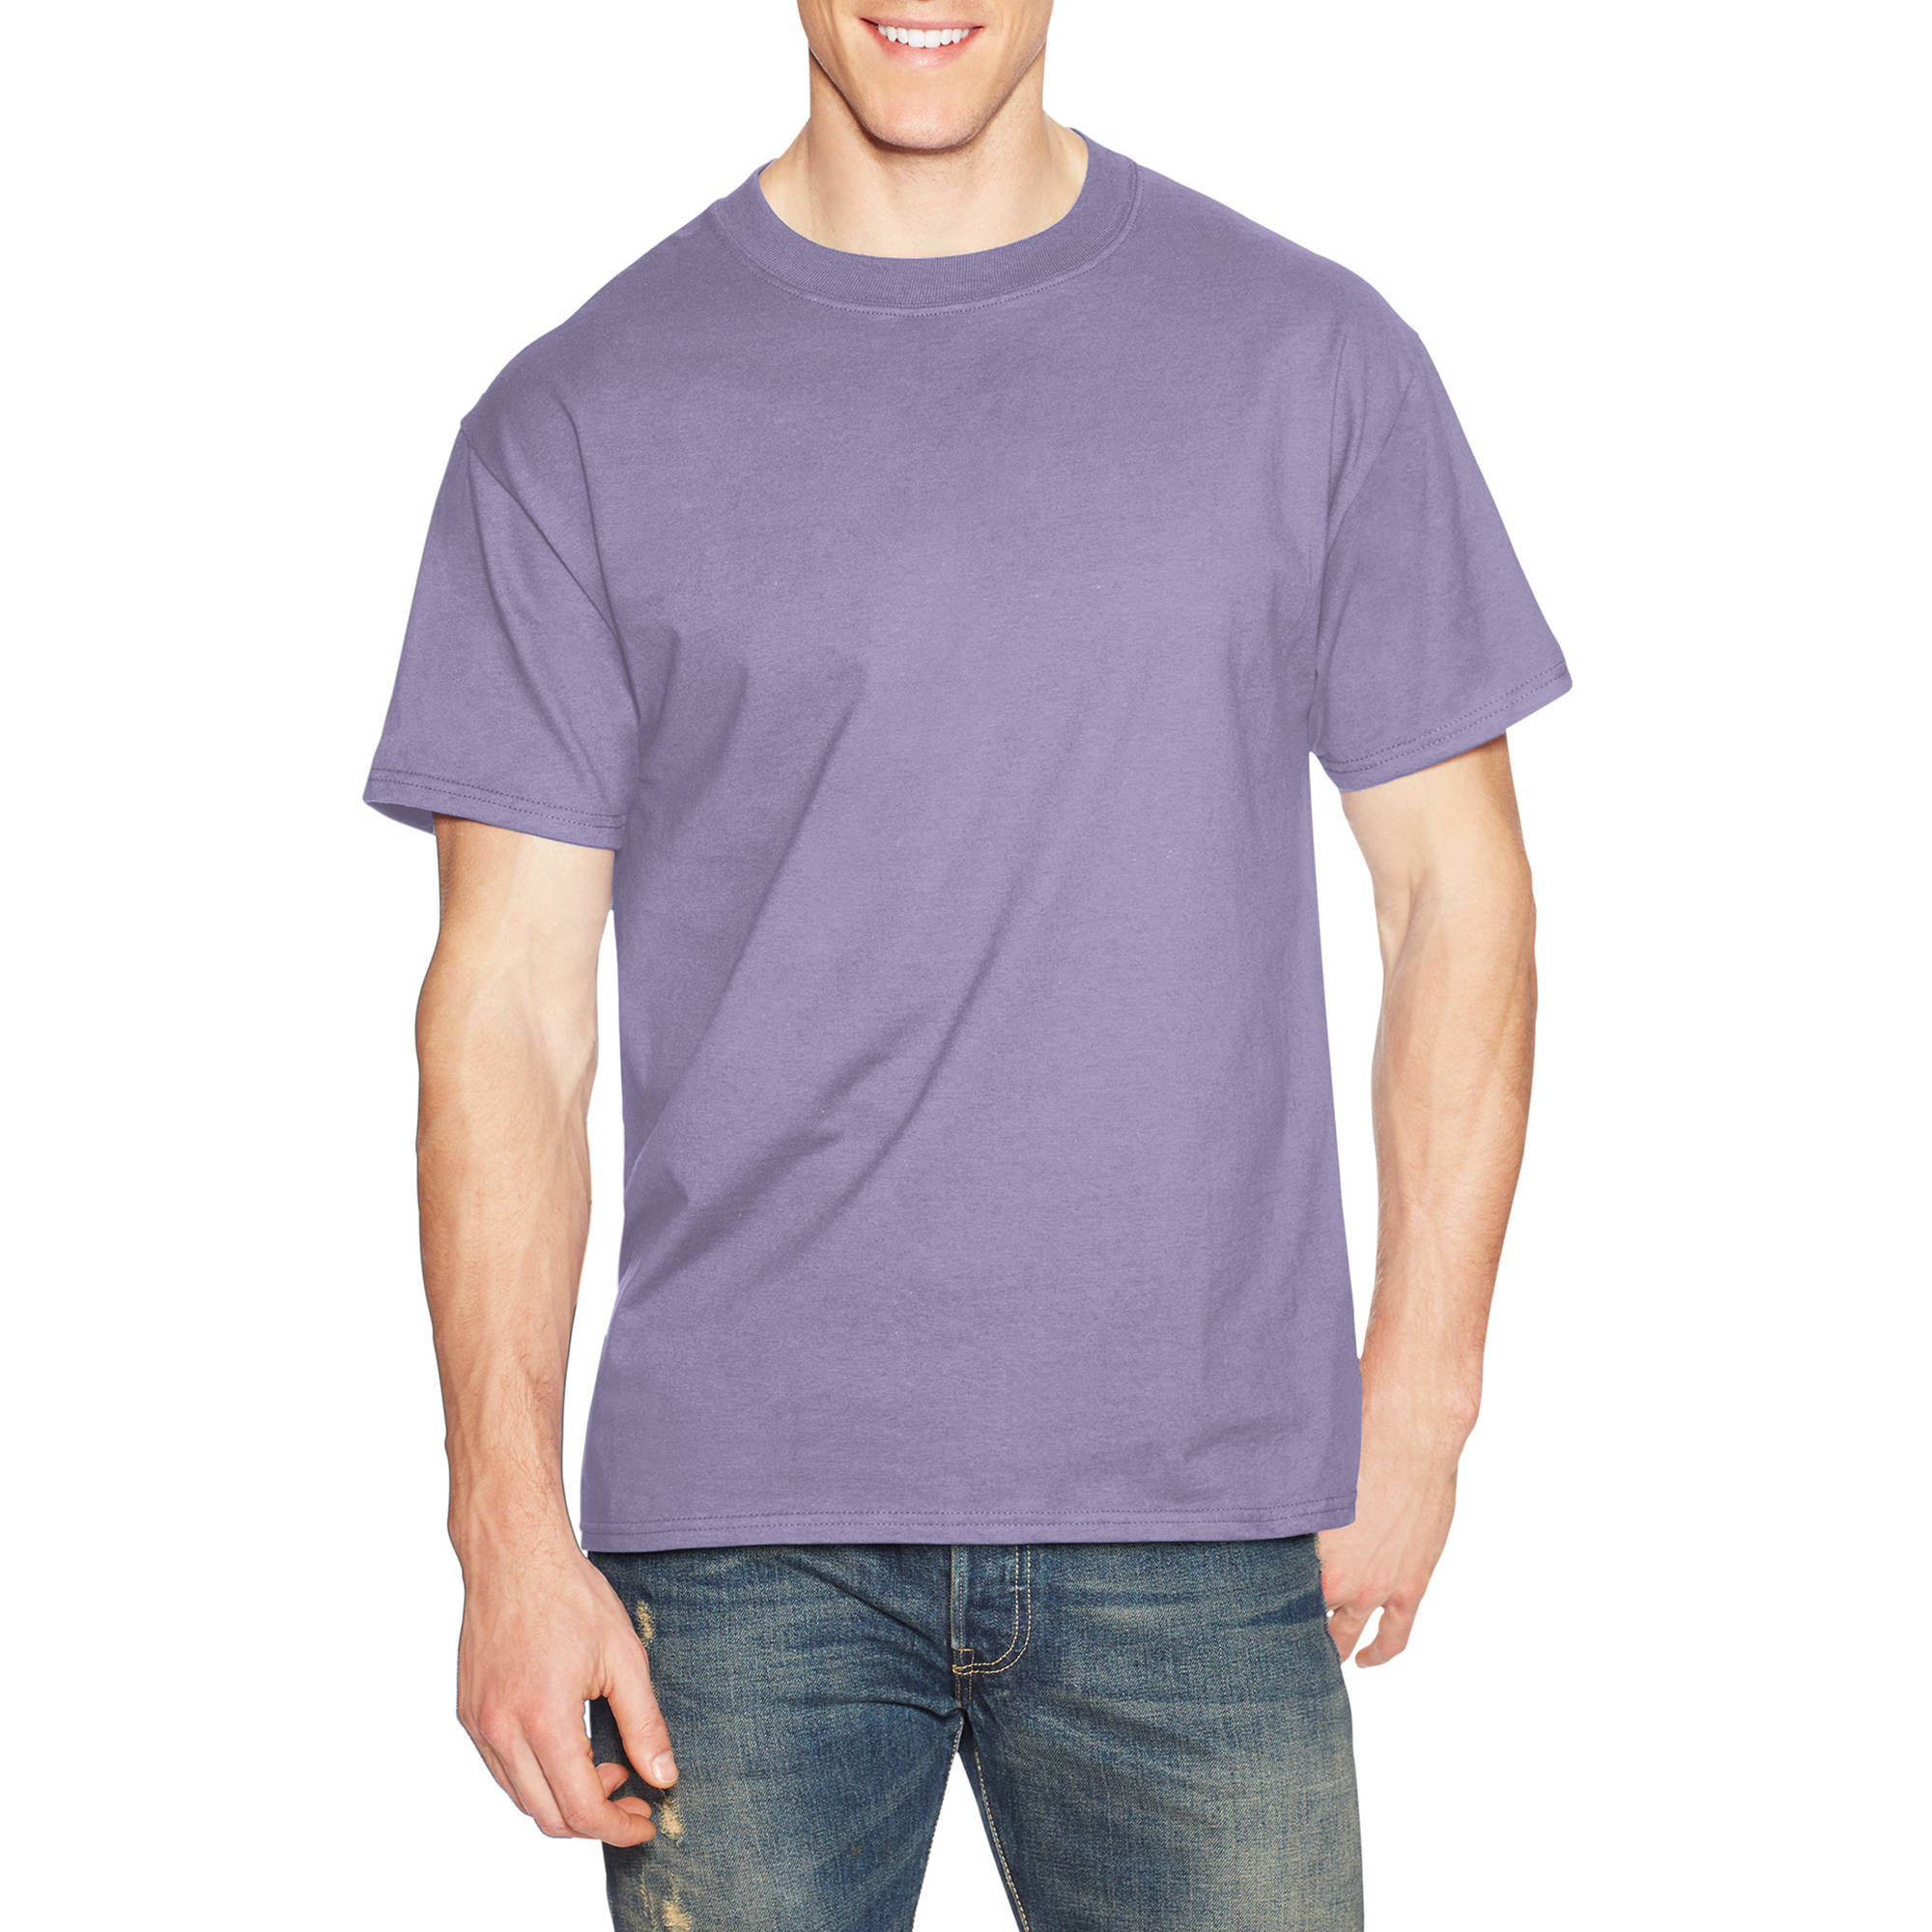 Hanes Men's Beefy Short Sleeve T-shirt